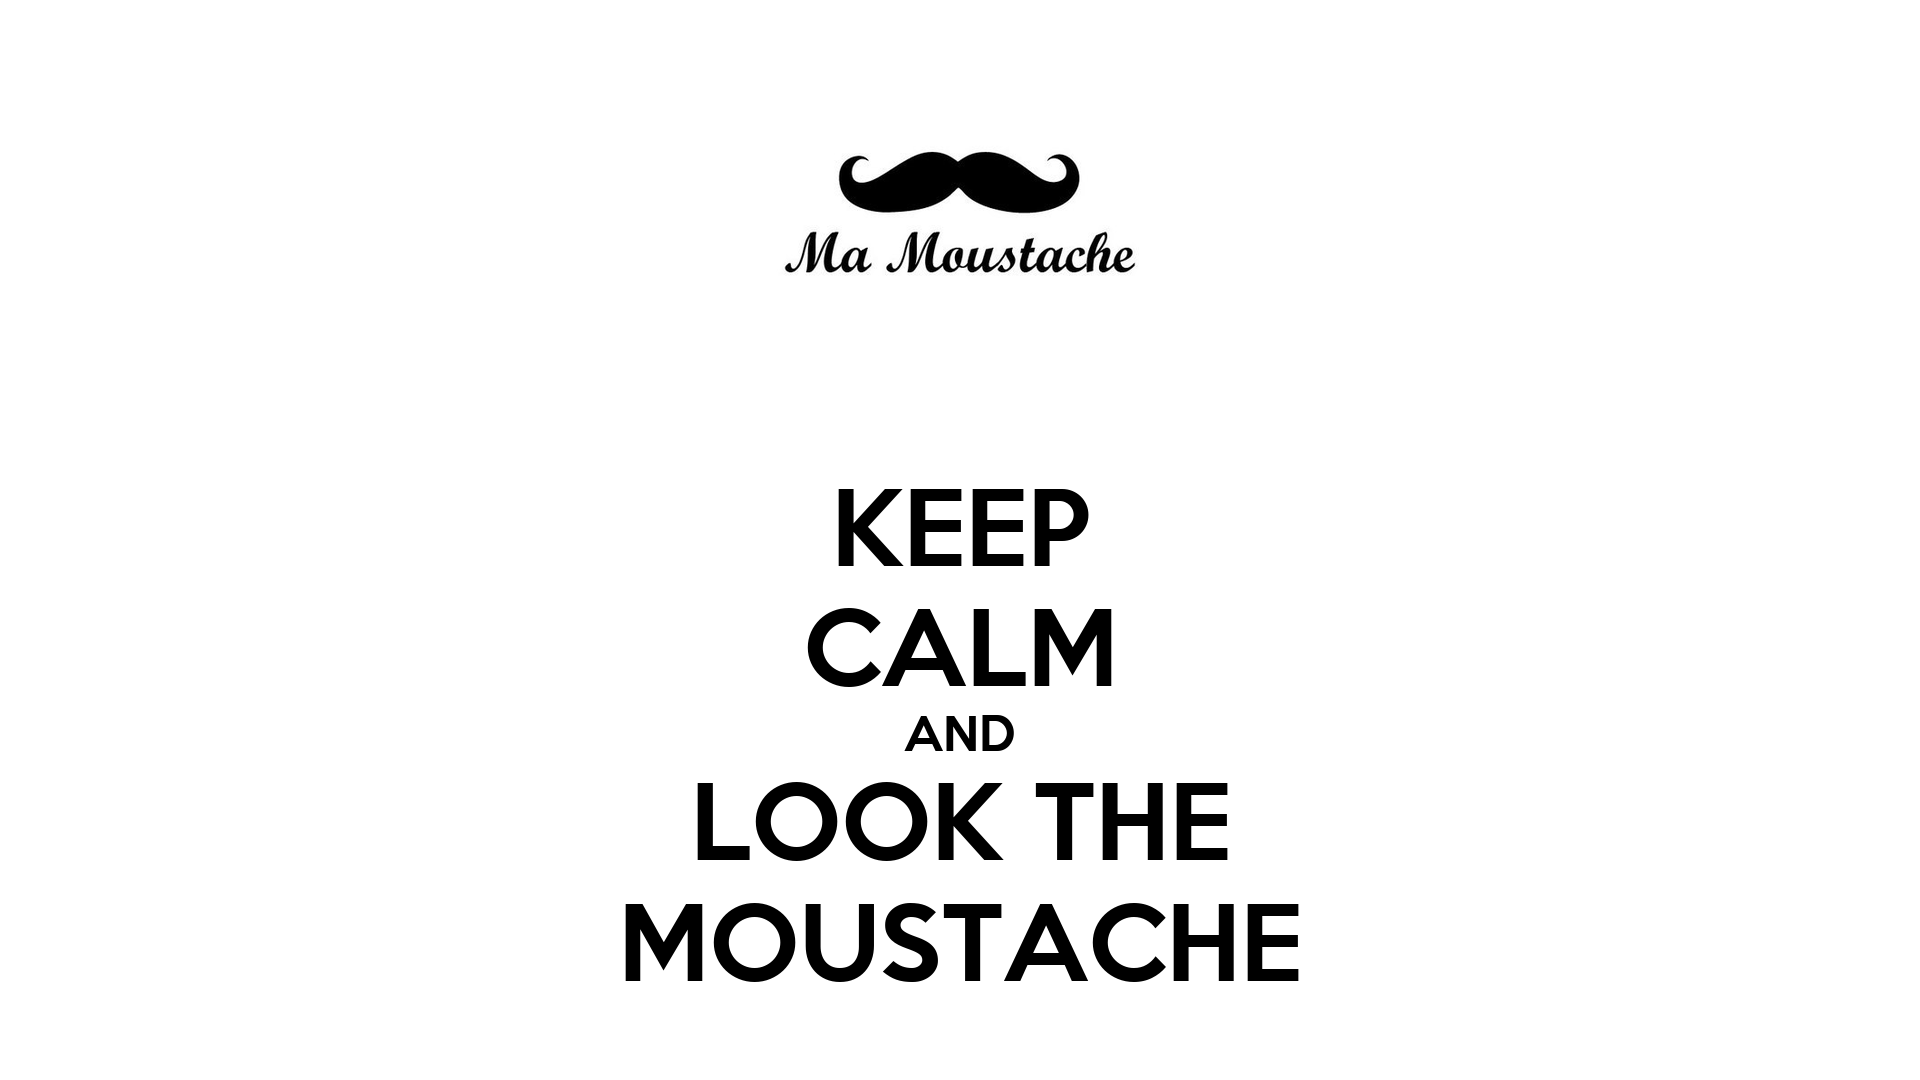 Harry Potter Quotes Desktop Wallpaper Keep Calm And Look The Moustache Poster Illias Keep